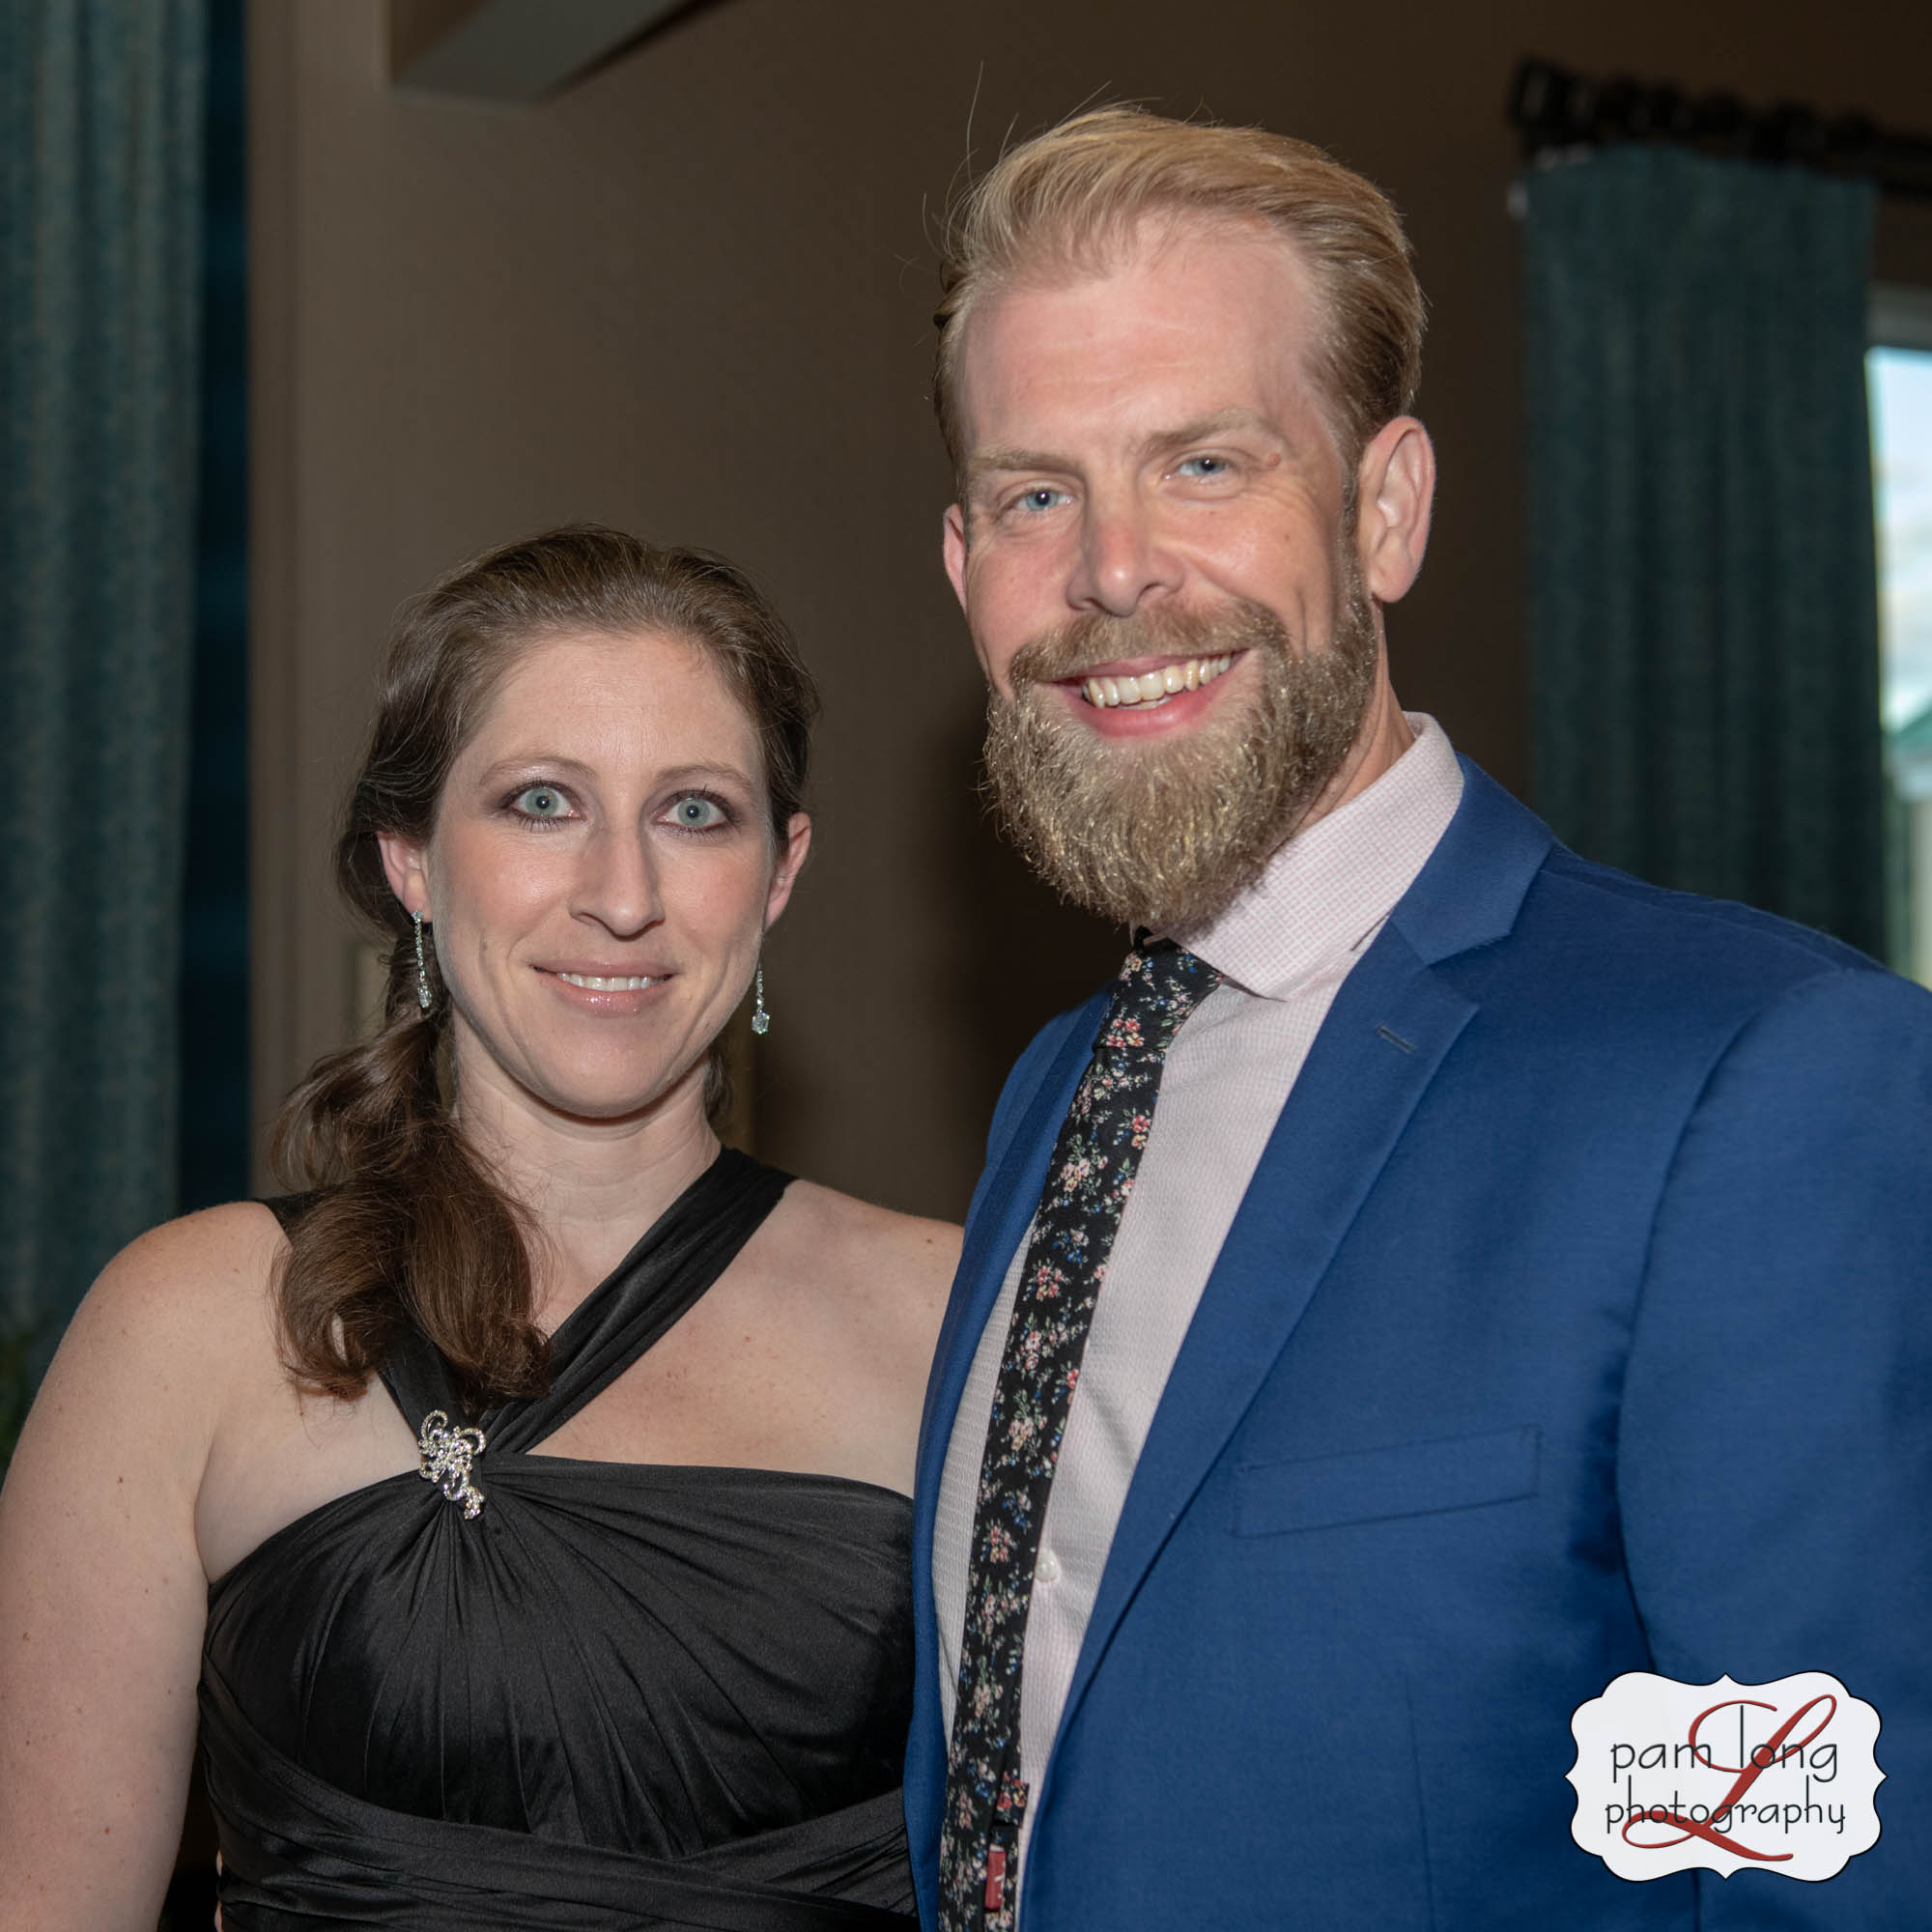 Pam-Long-Photography-HoCo-Chamber-20191005-37